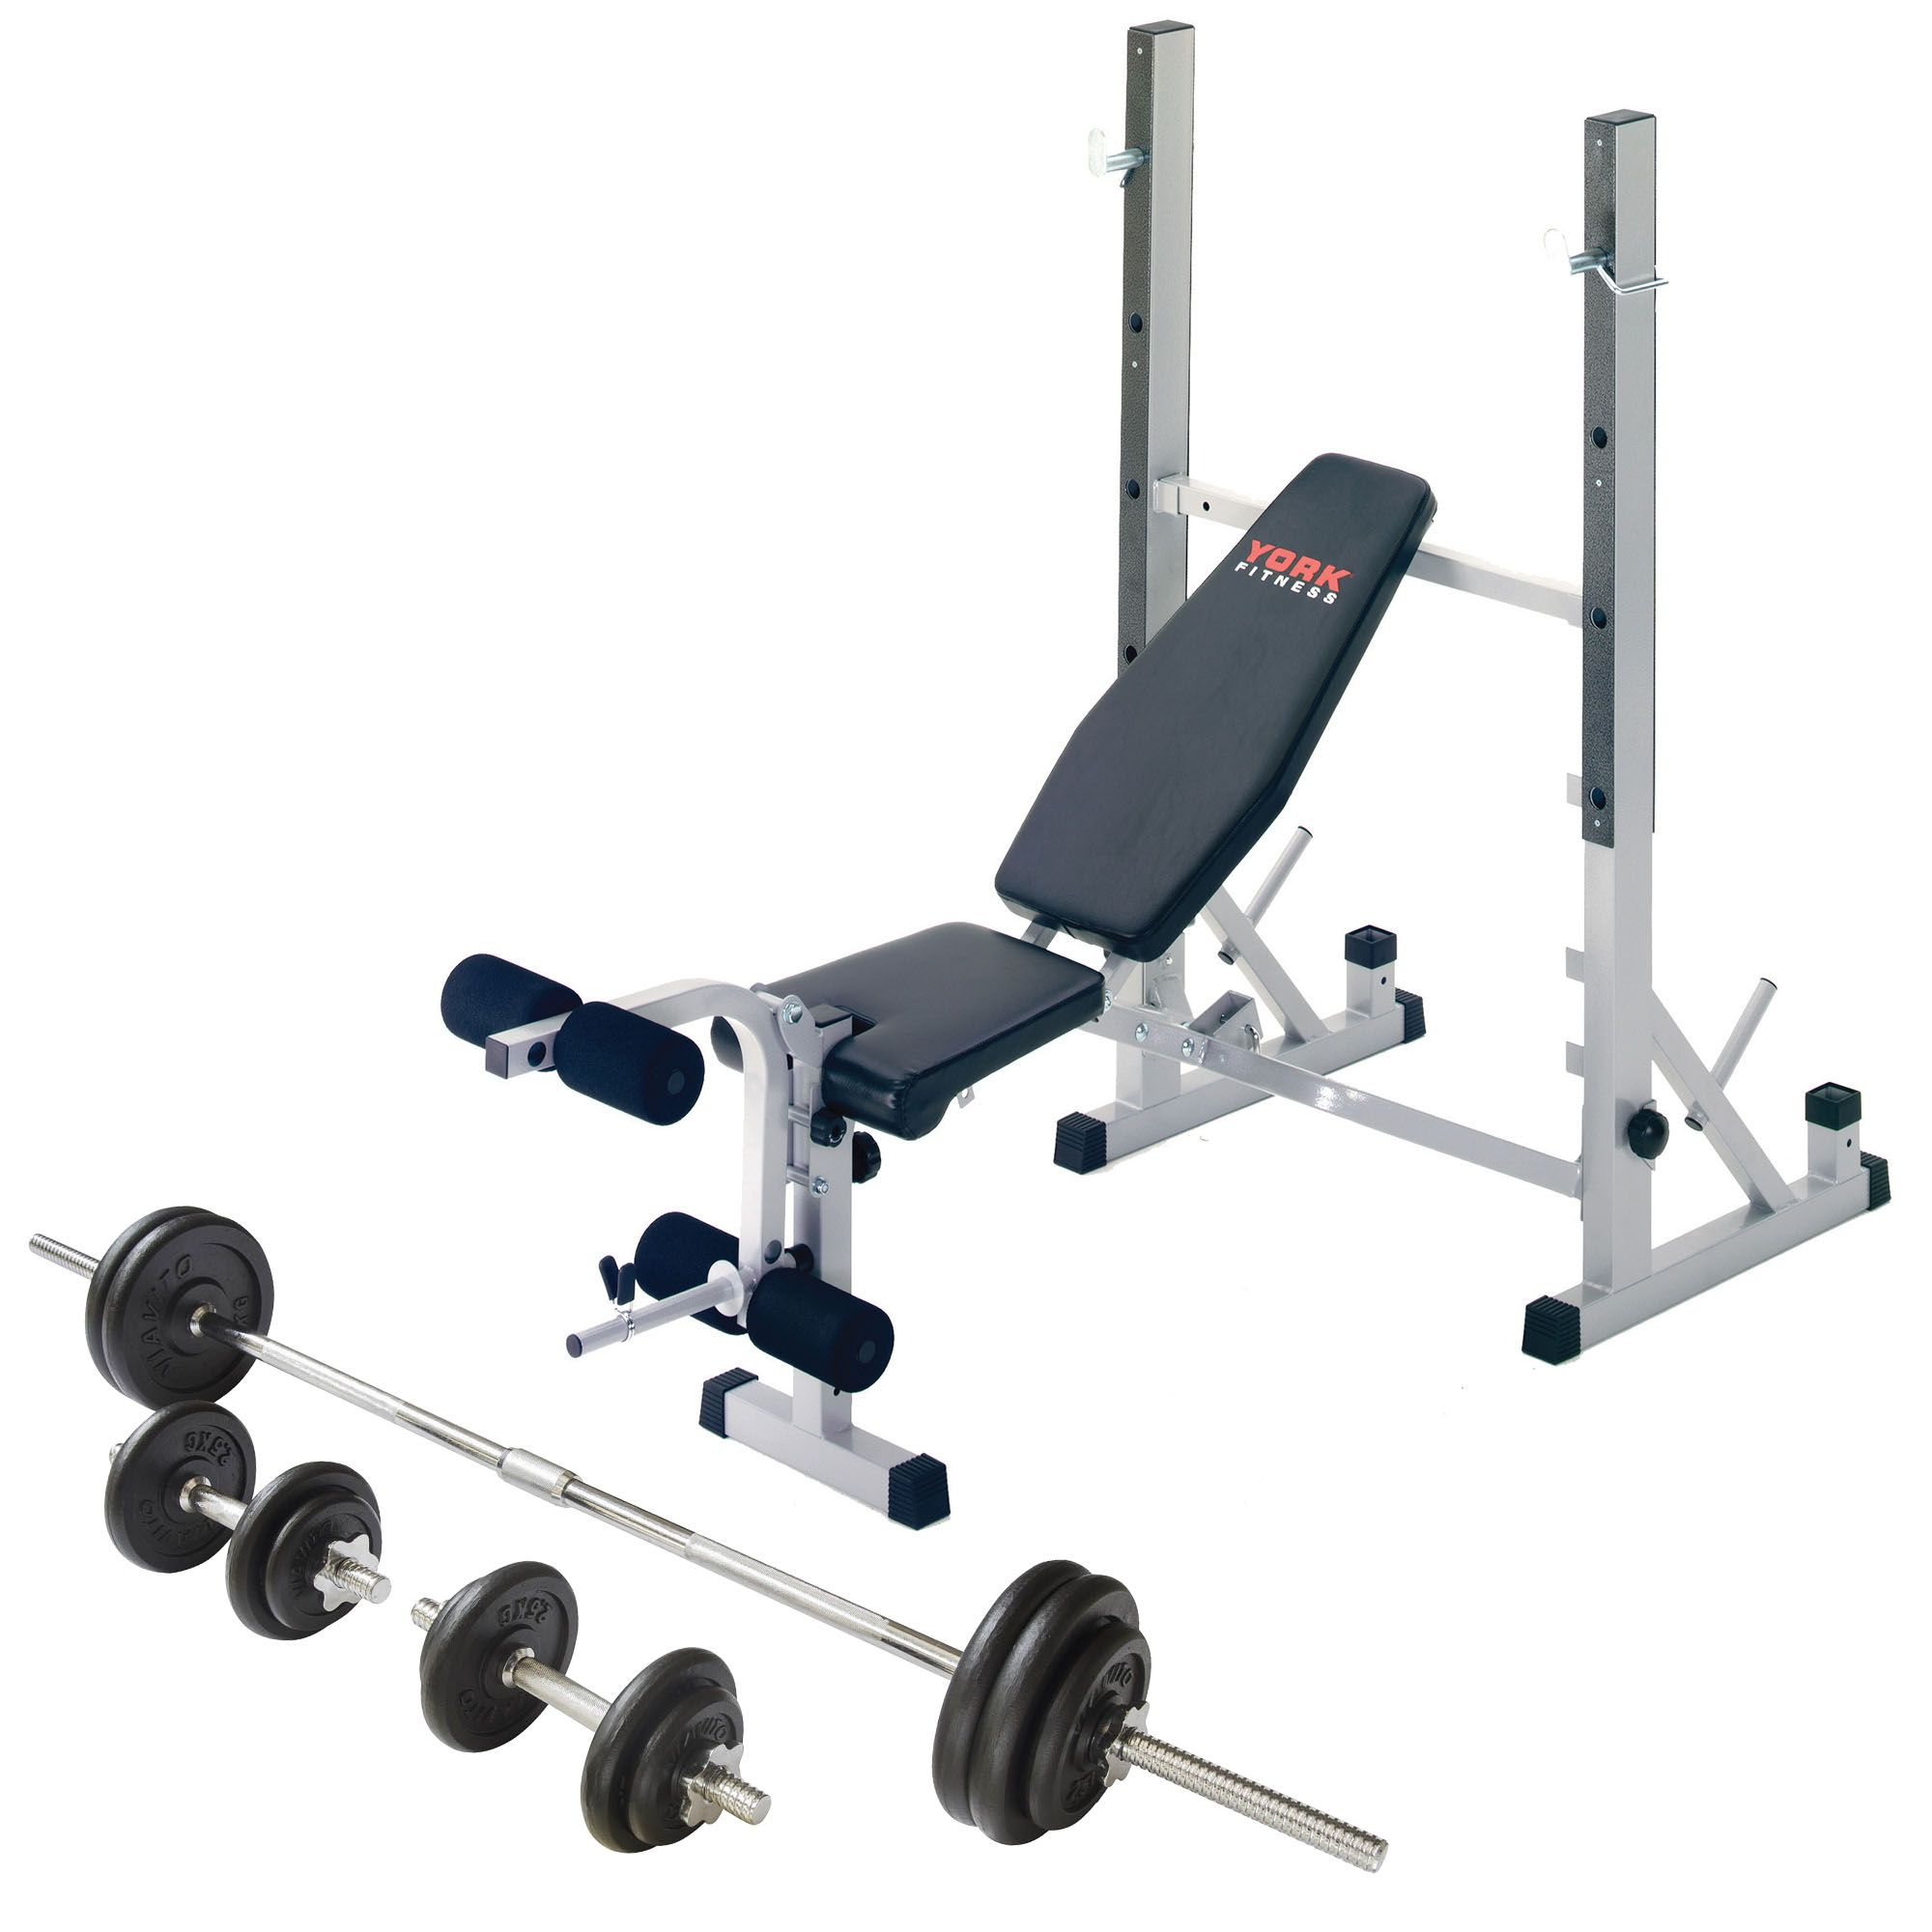 Bench Bar For Sale: York B540 Weight Bench With 50kg Barbell Dumbbell Set